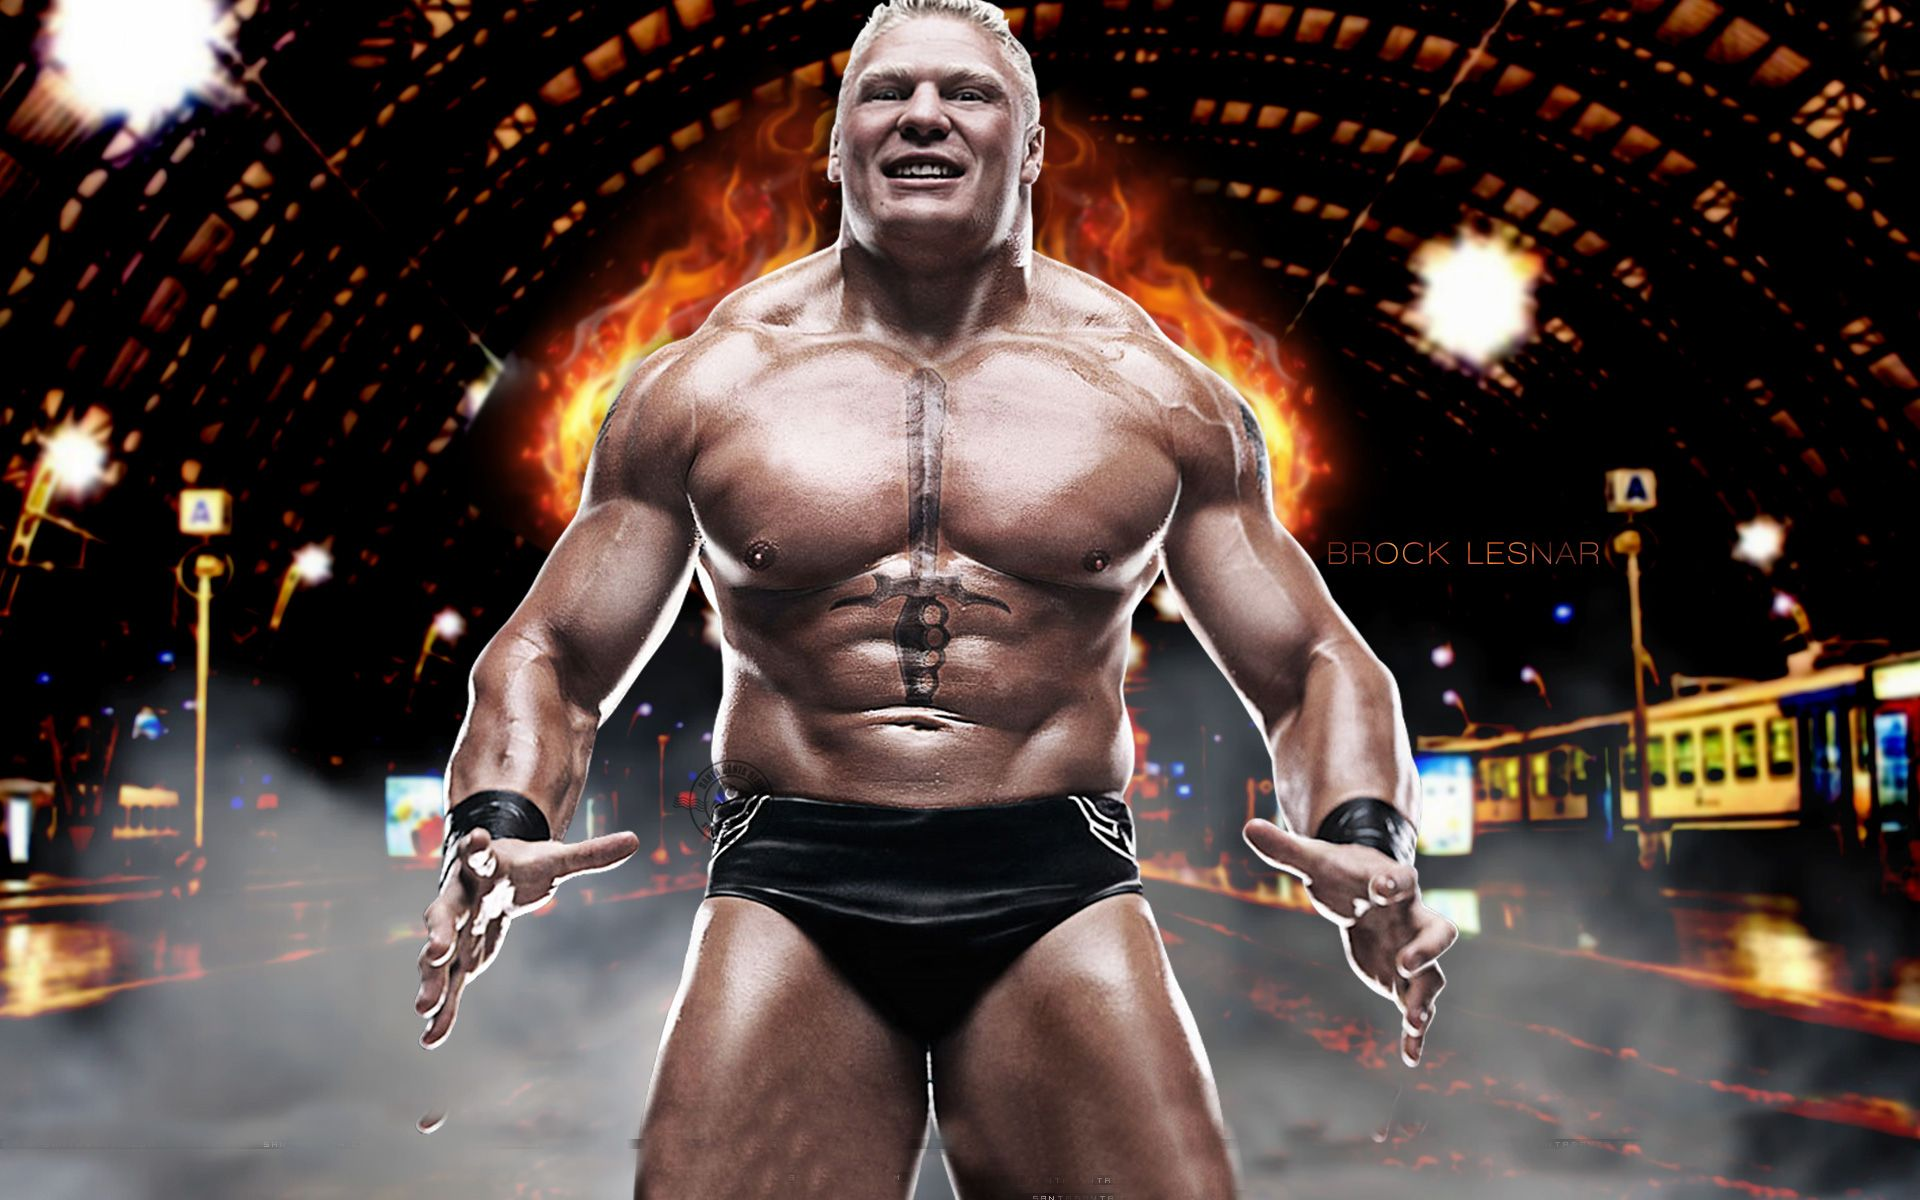 lesnar free download hd desktop wallpaper backgrounds images